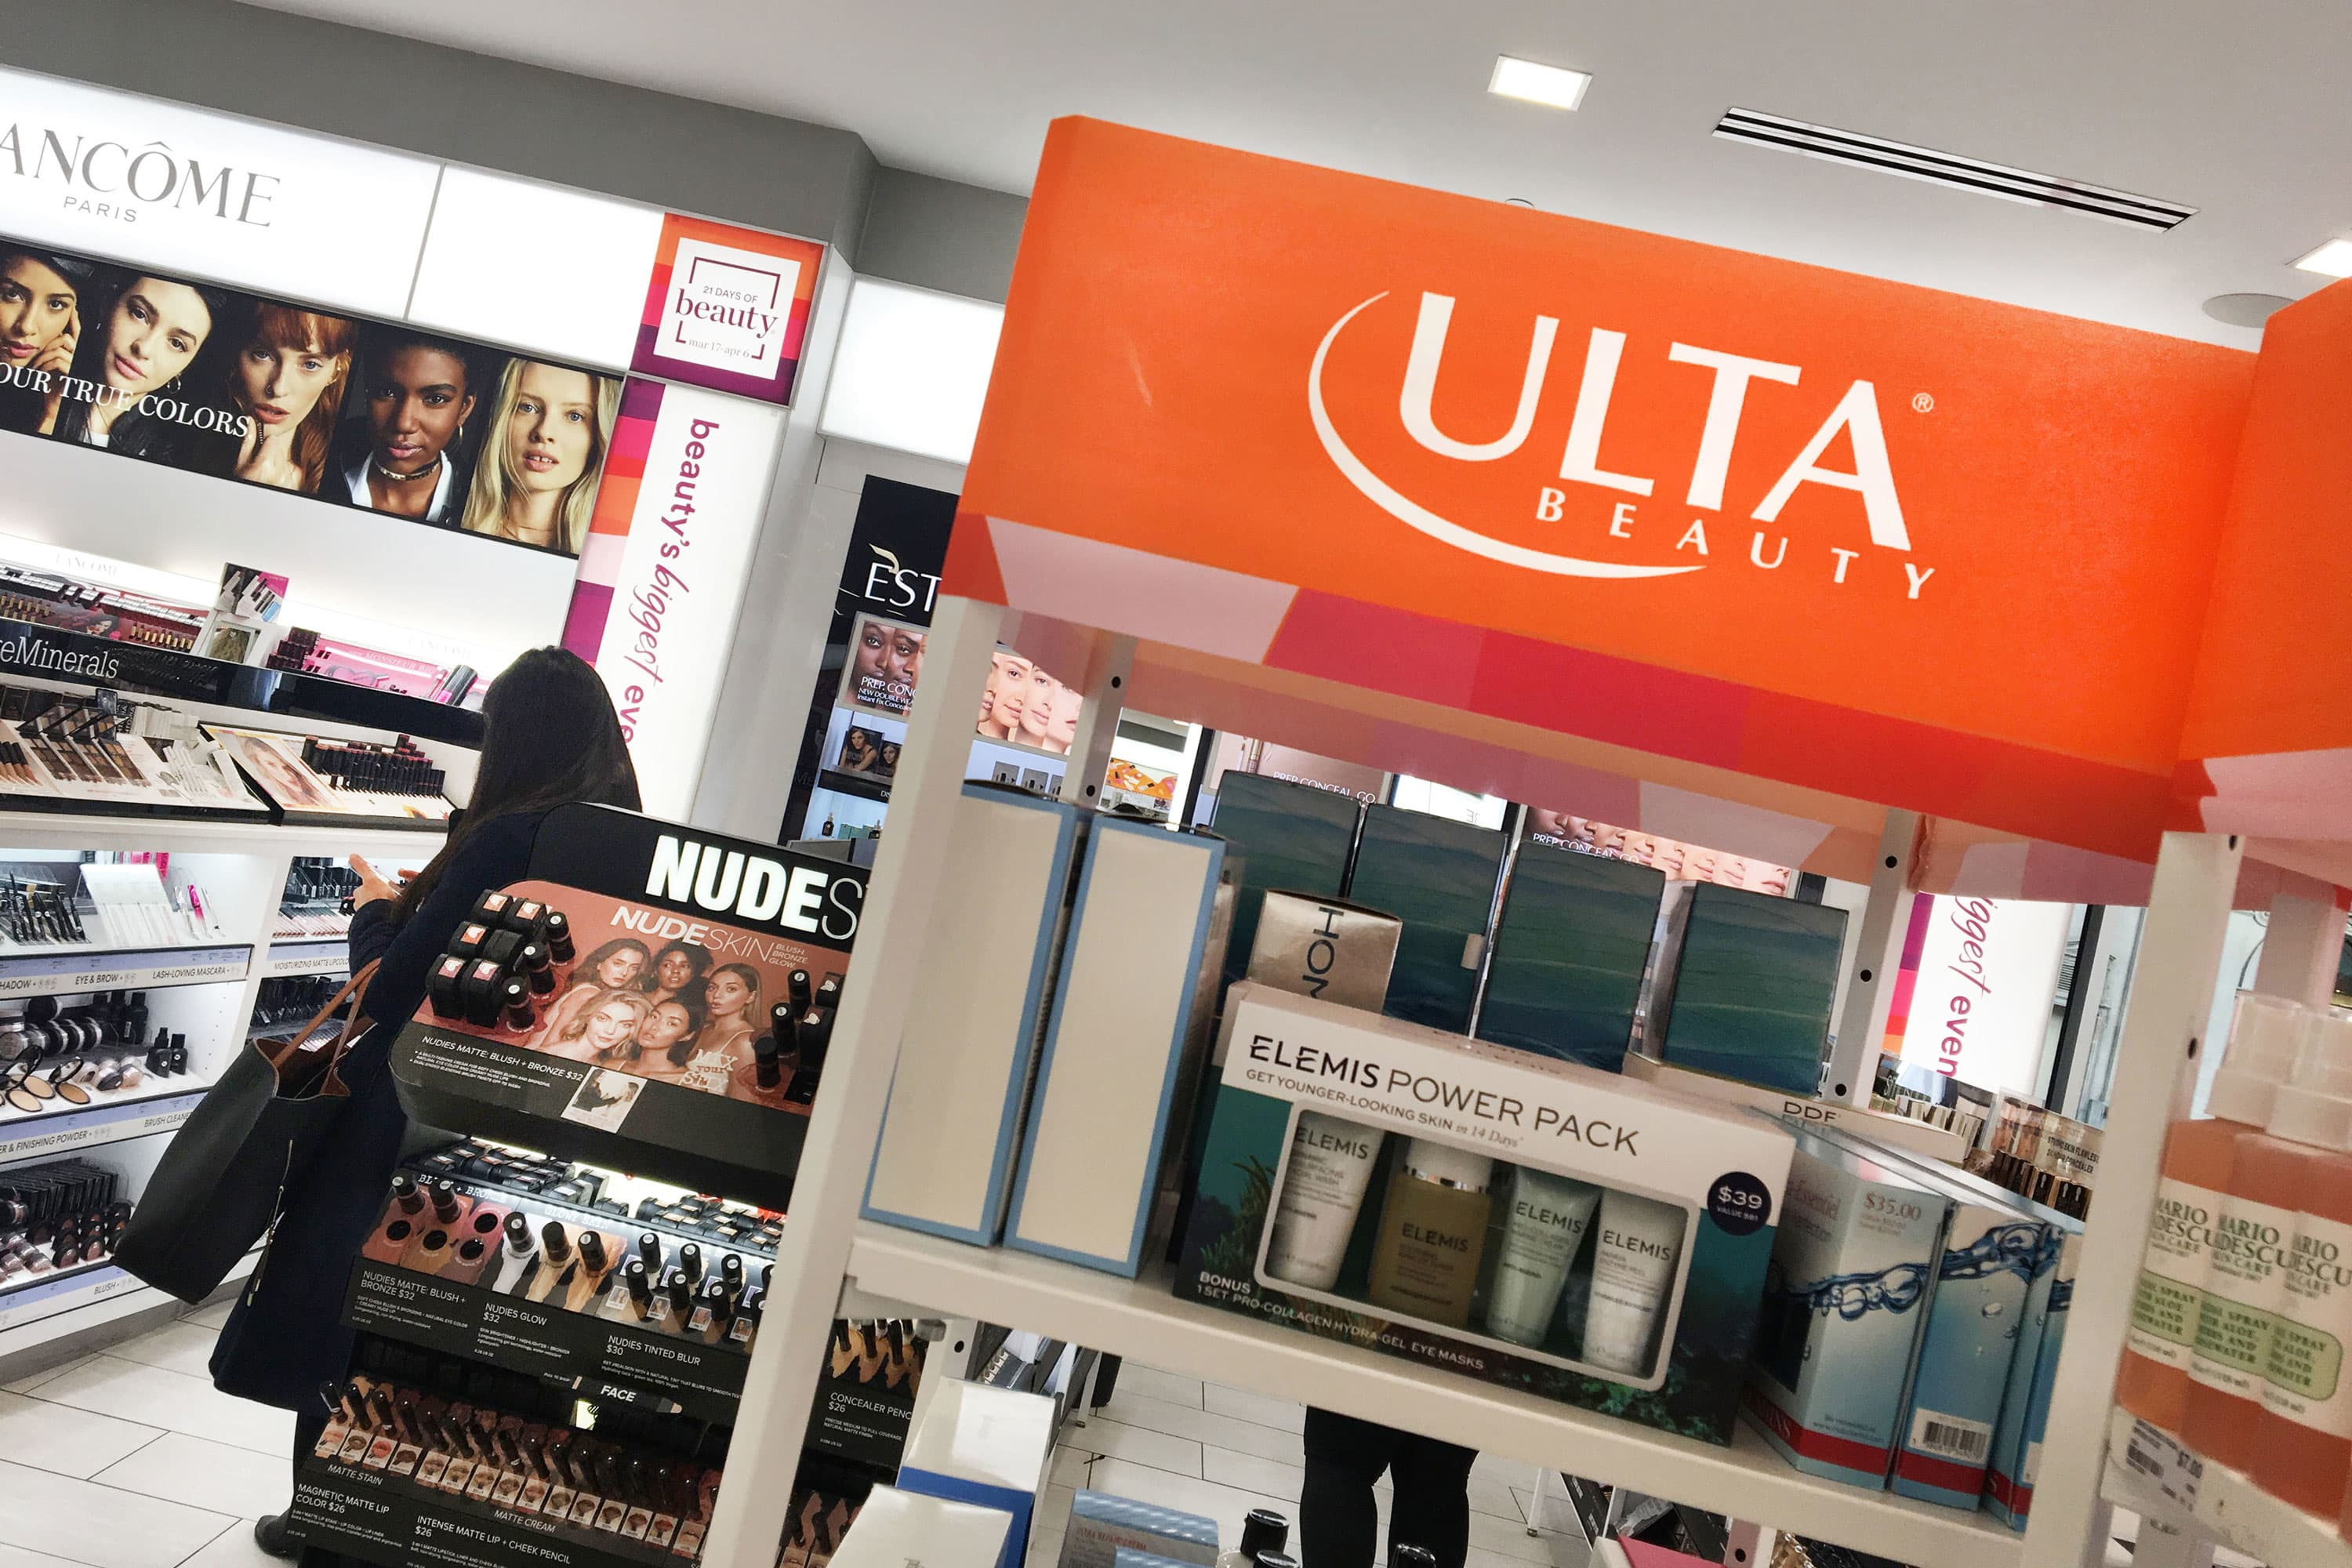 Ulta Beauty CEO says retailers need support from Washington